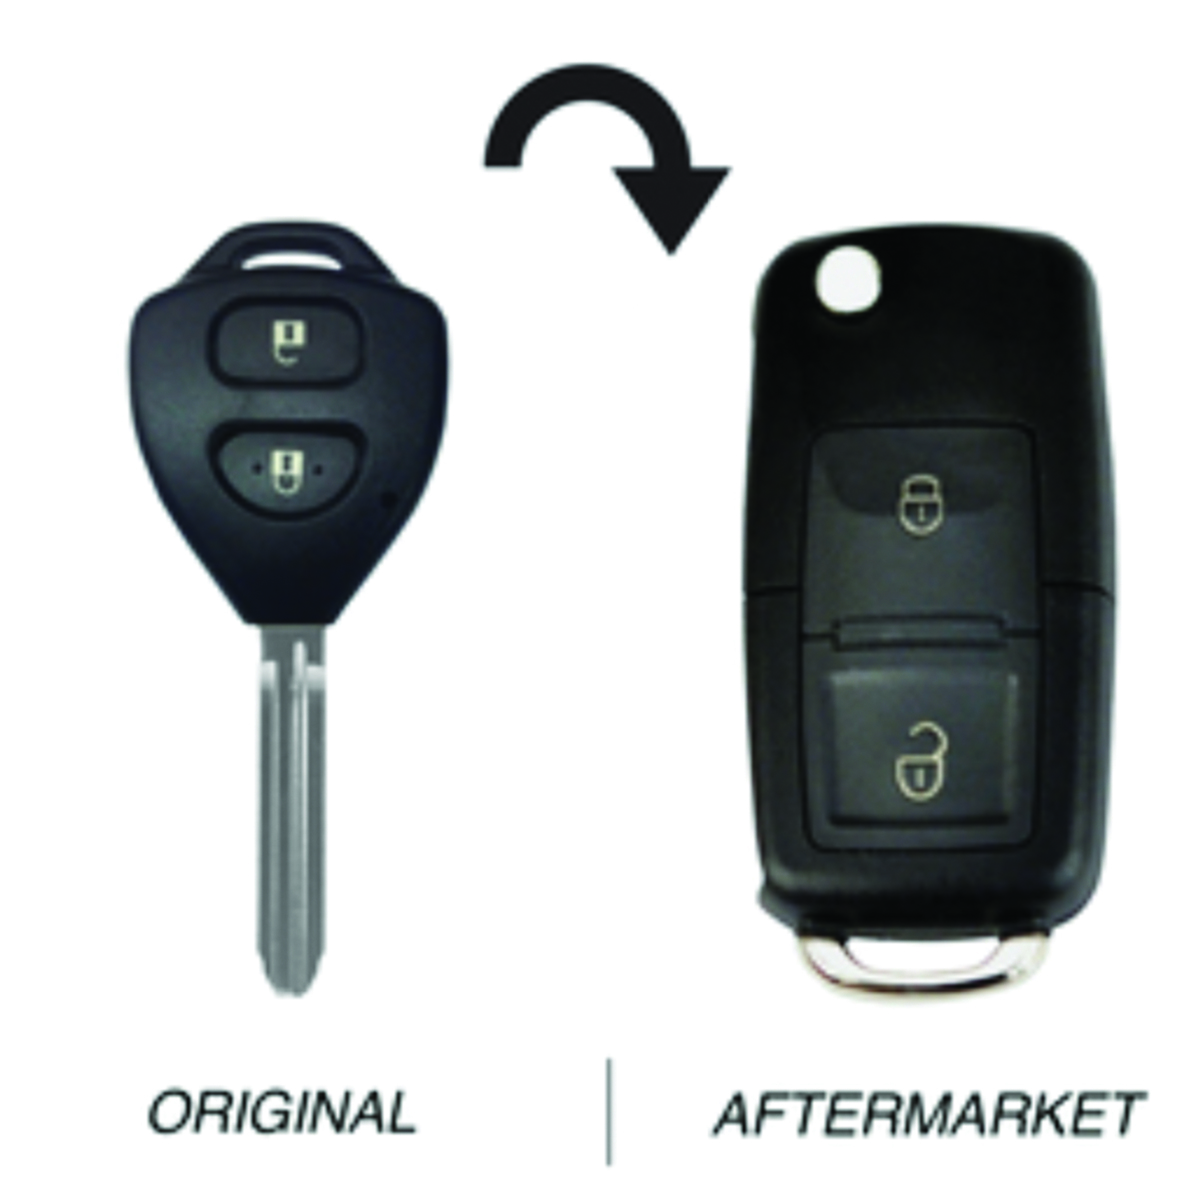 Toyota compatible 2 button TOY43 remote Key G Chip 314MHz, (28240)